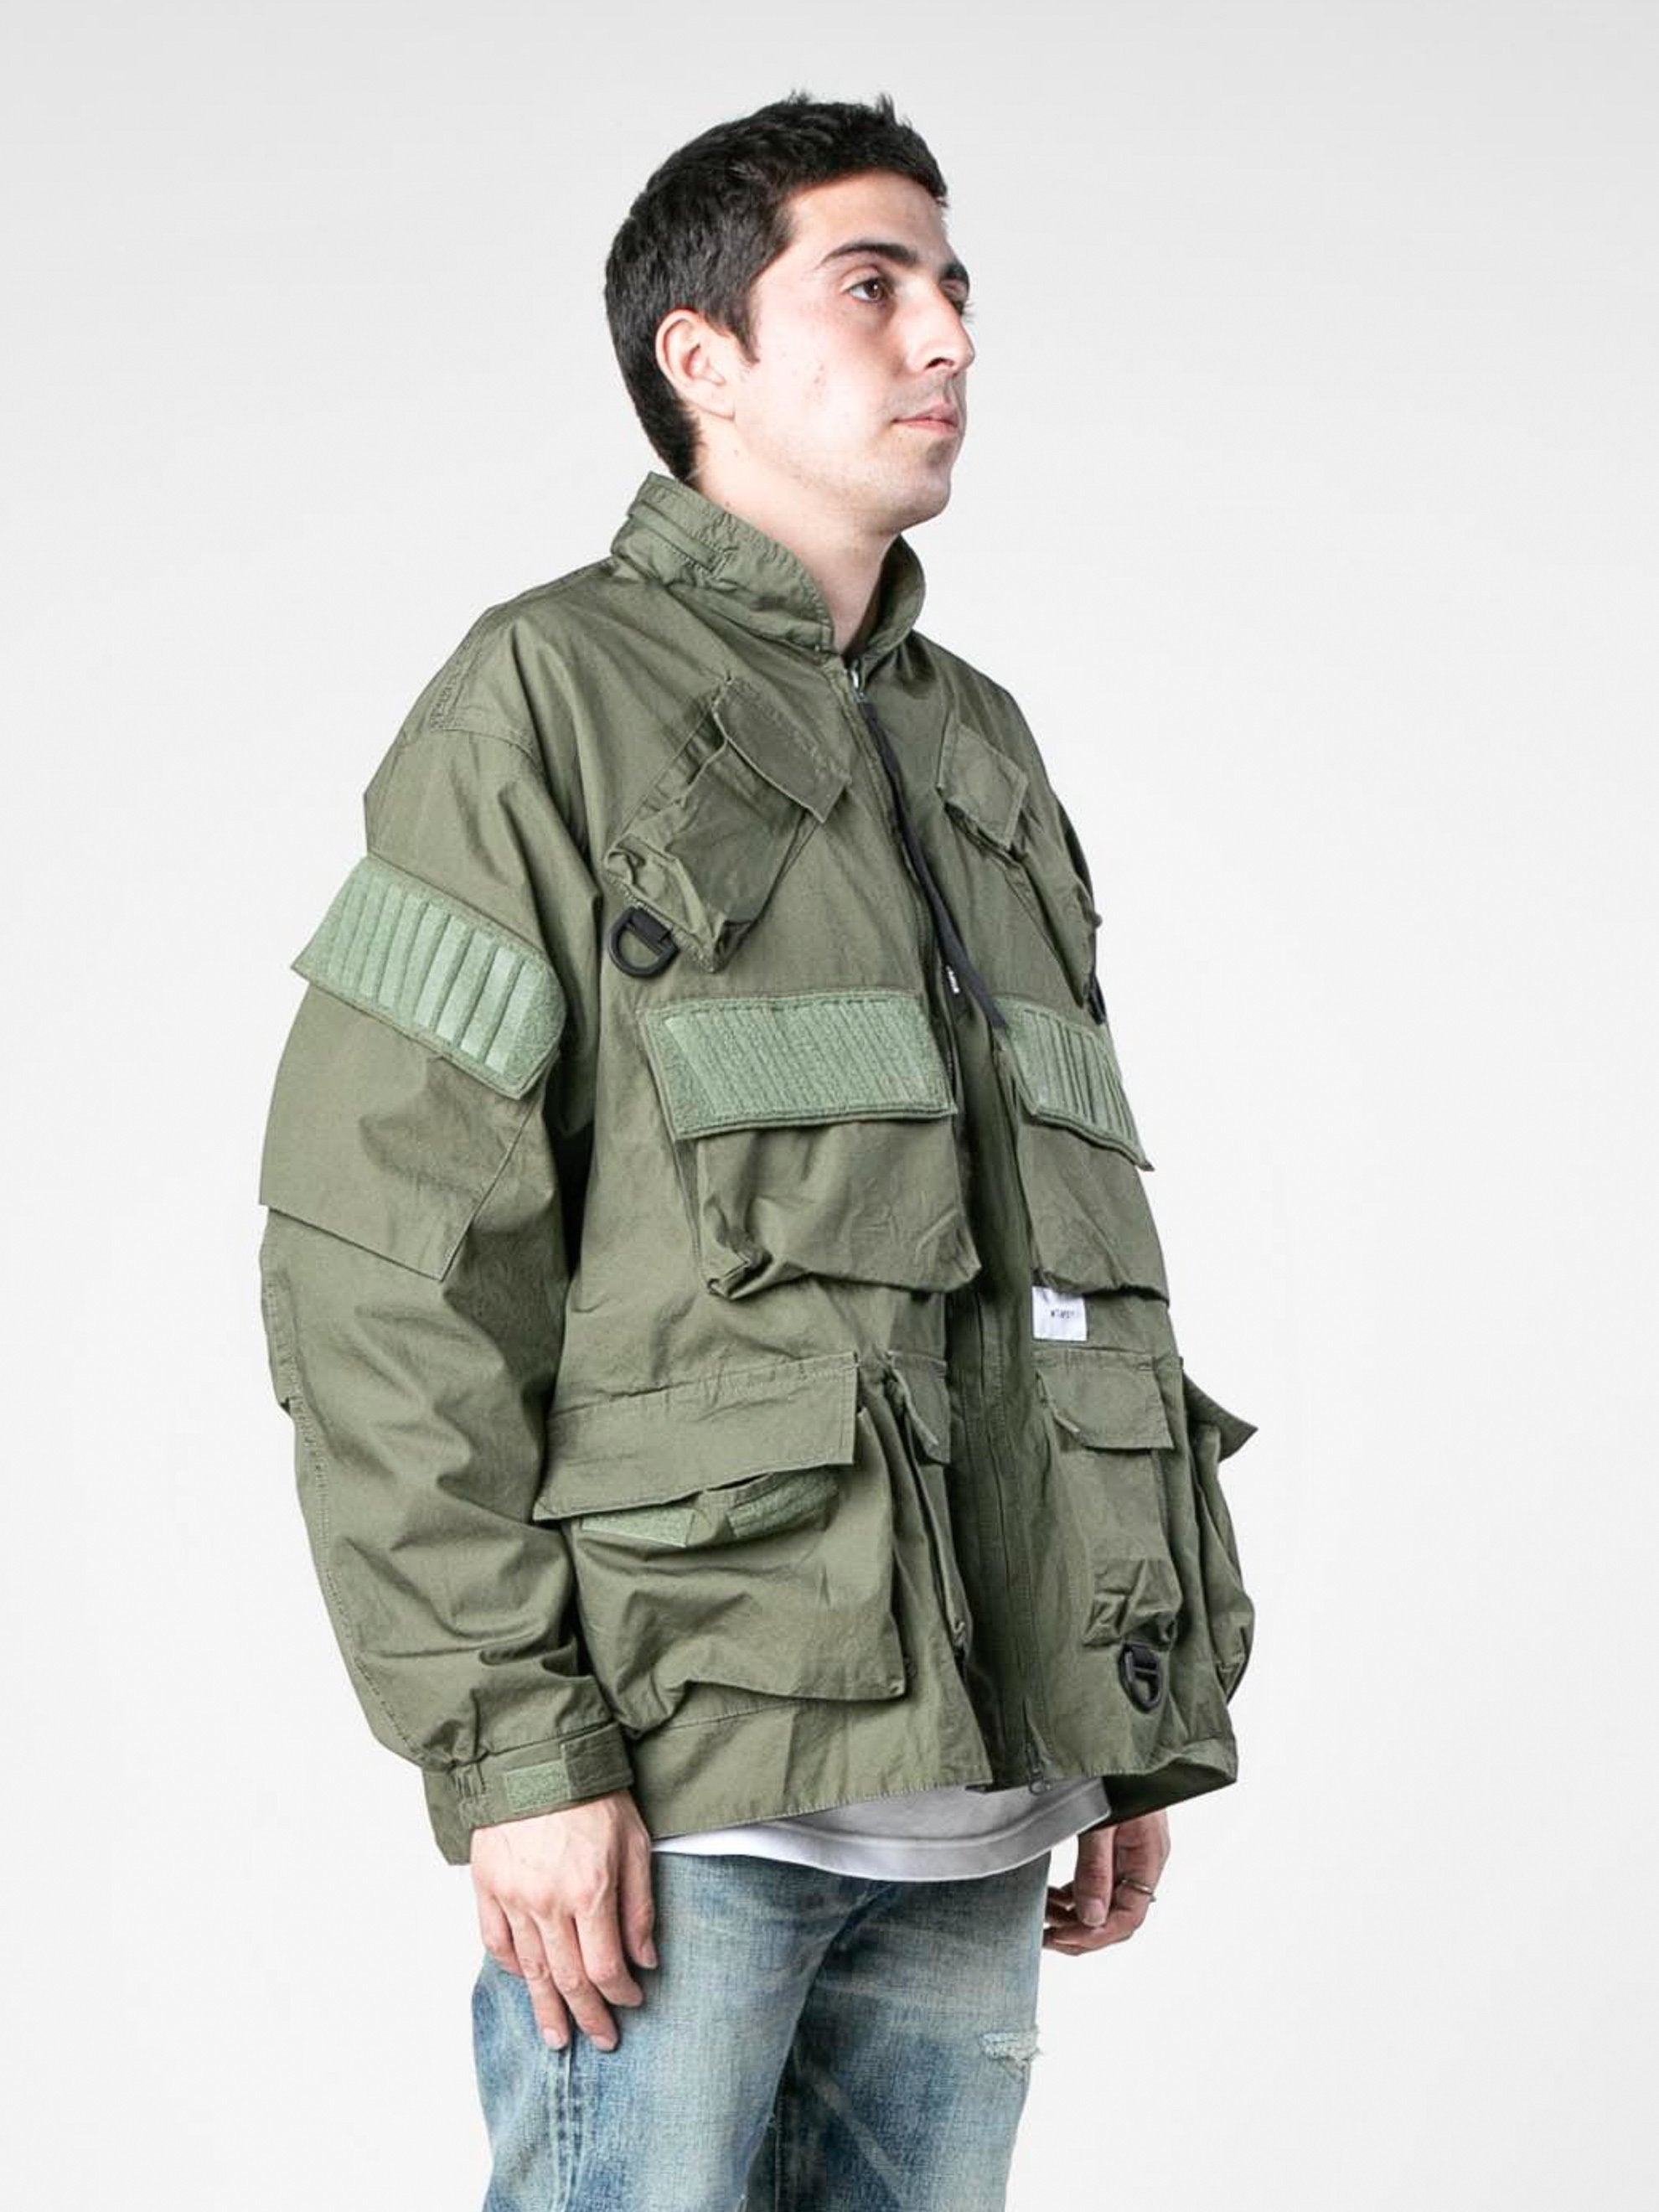 Olive Drab Modular / Jacket. Cotton. Weather 4